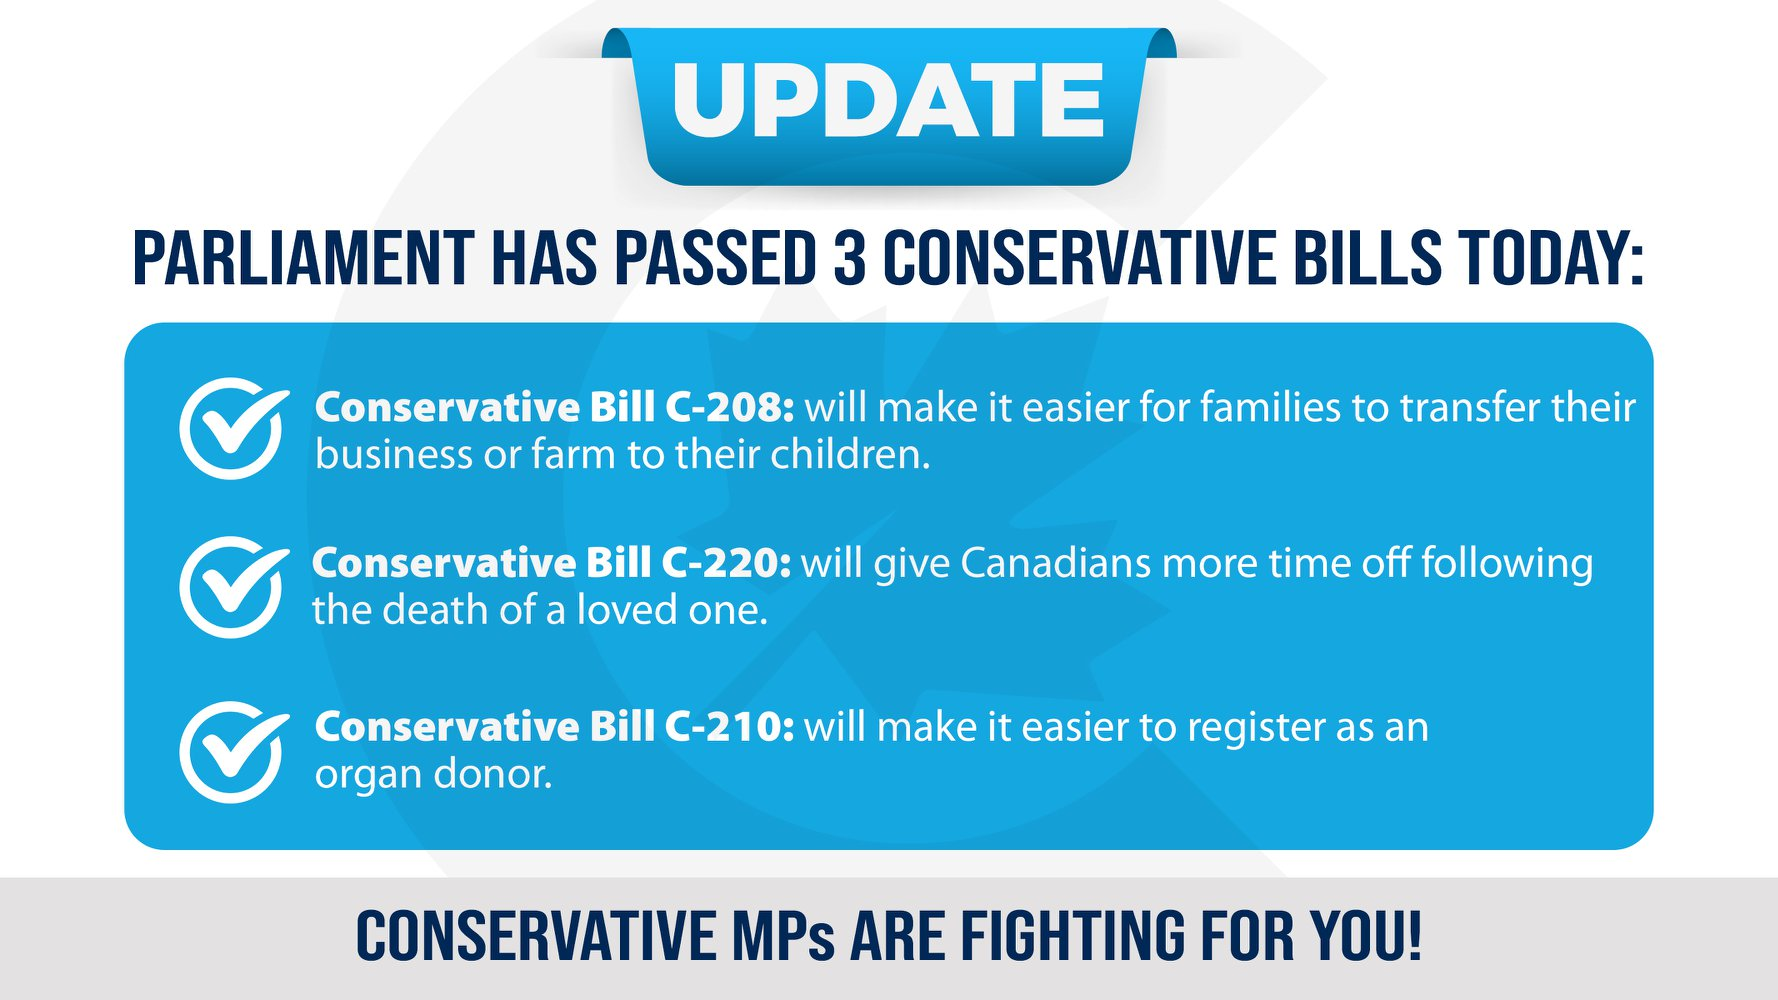 The House of Commons has passed 3 Conservative bills